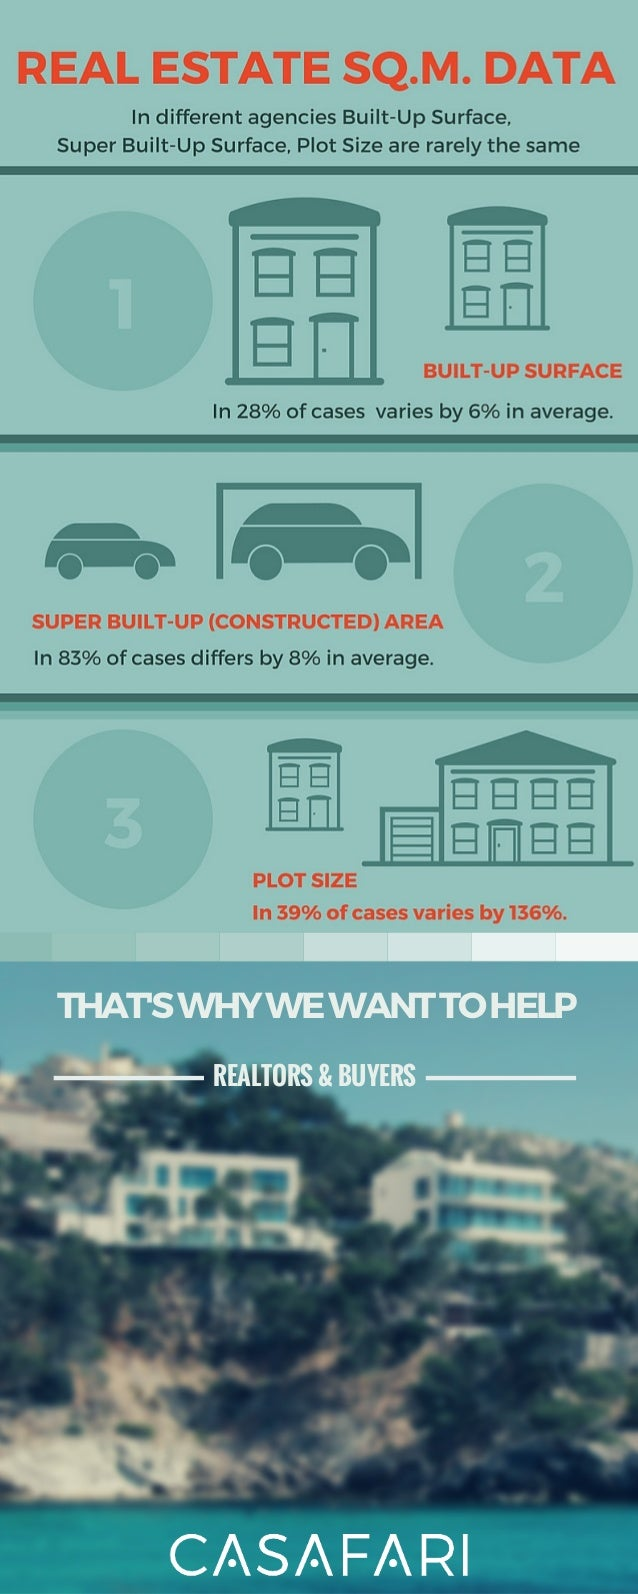 [infographic] 7 issues on the prime real estate market in Spain - casafari Slide 3